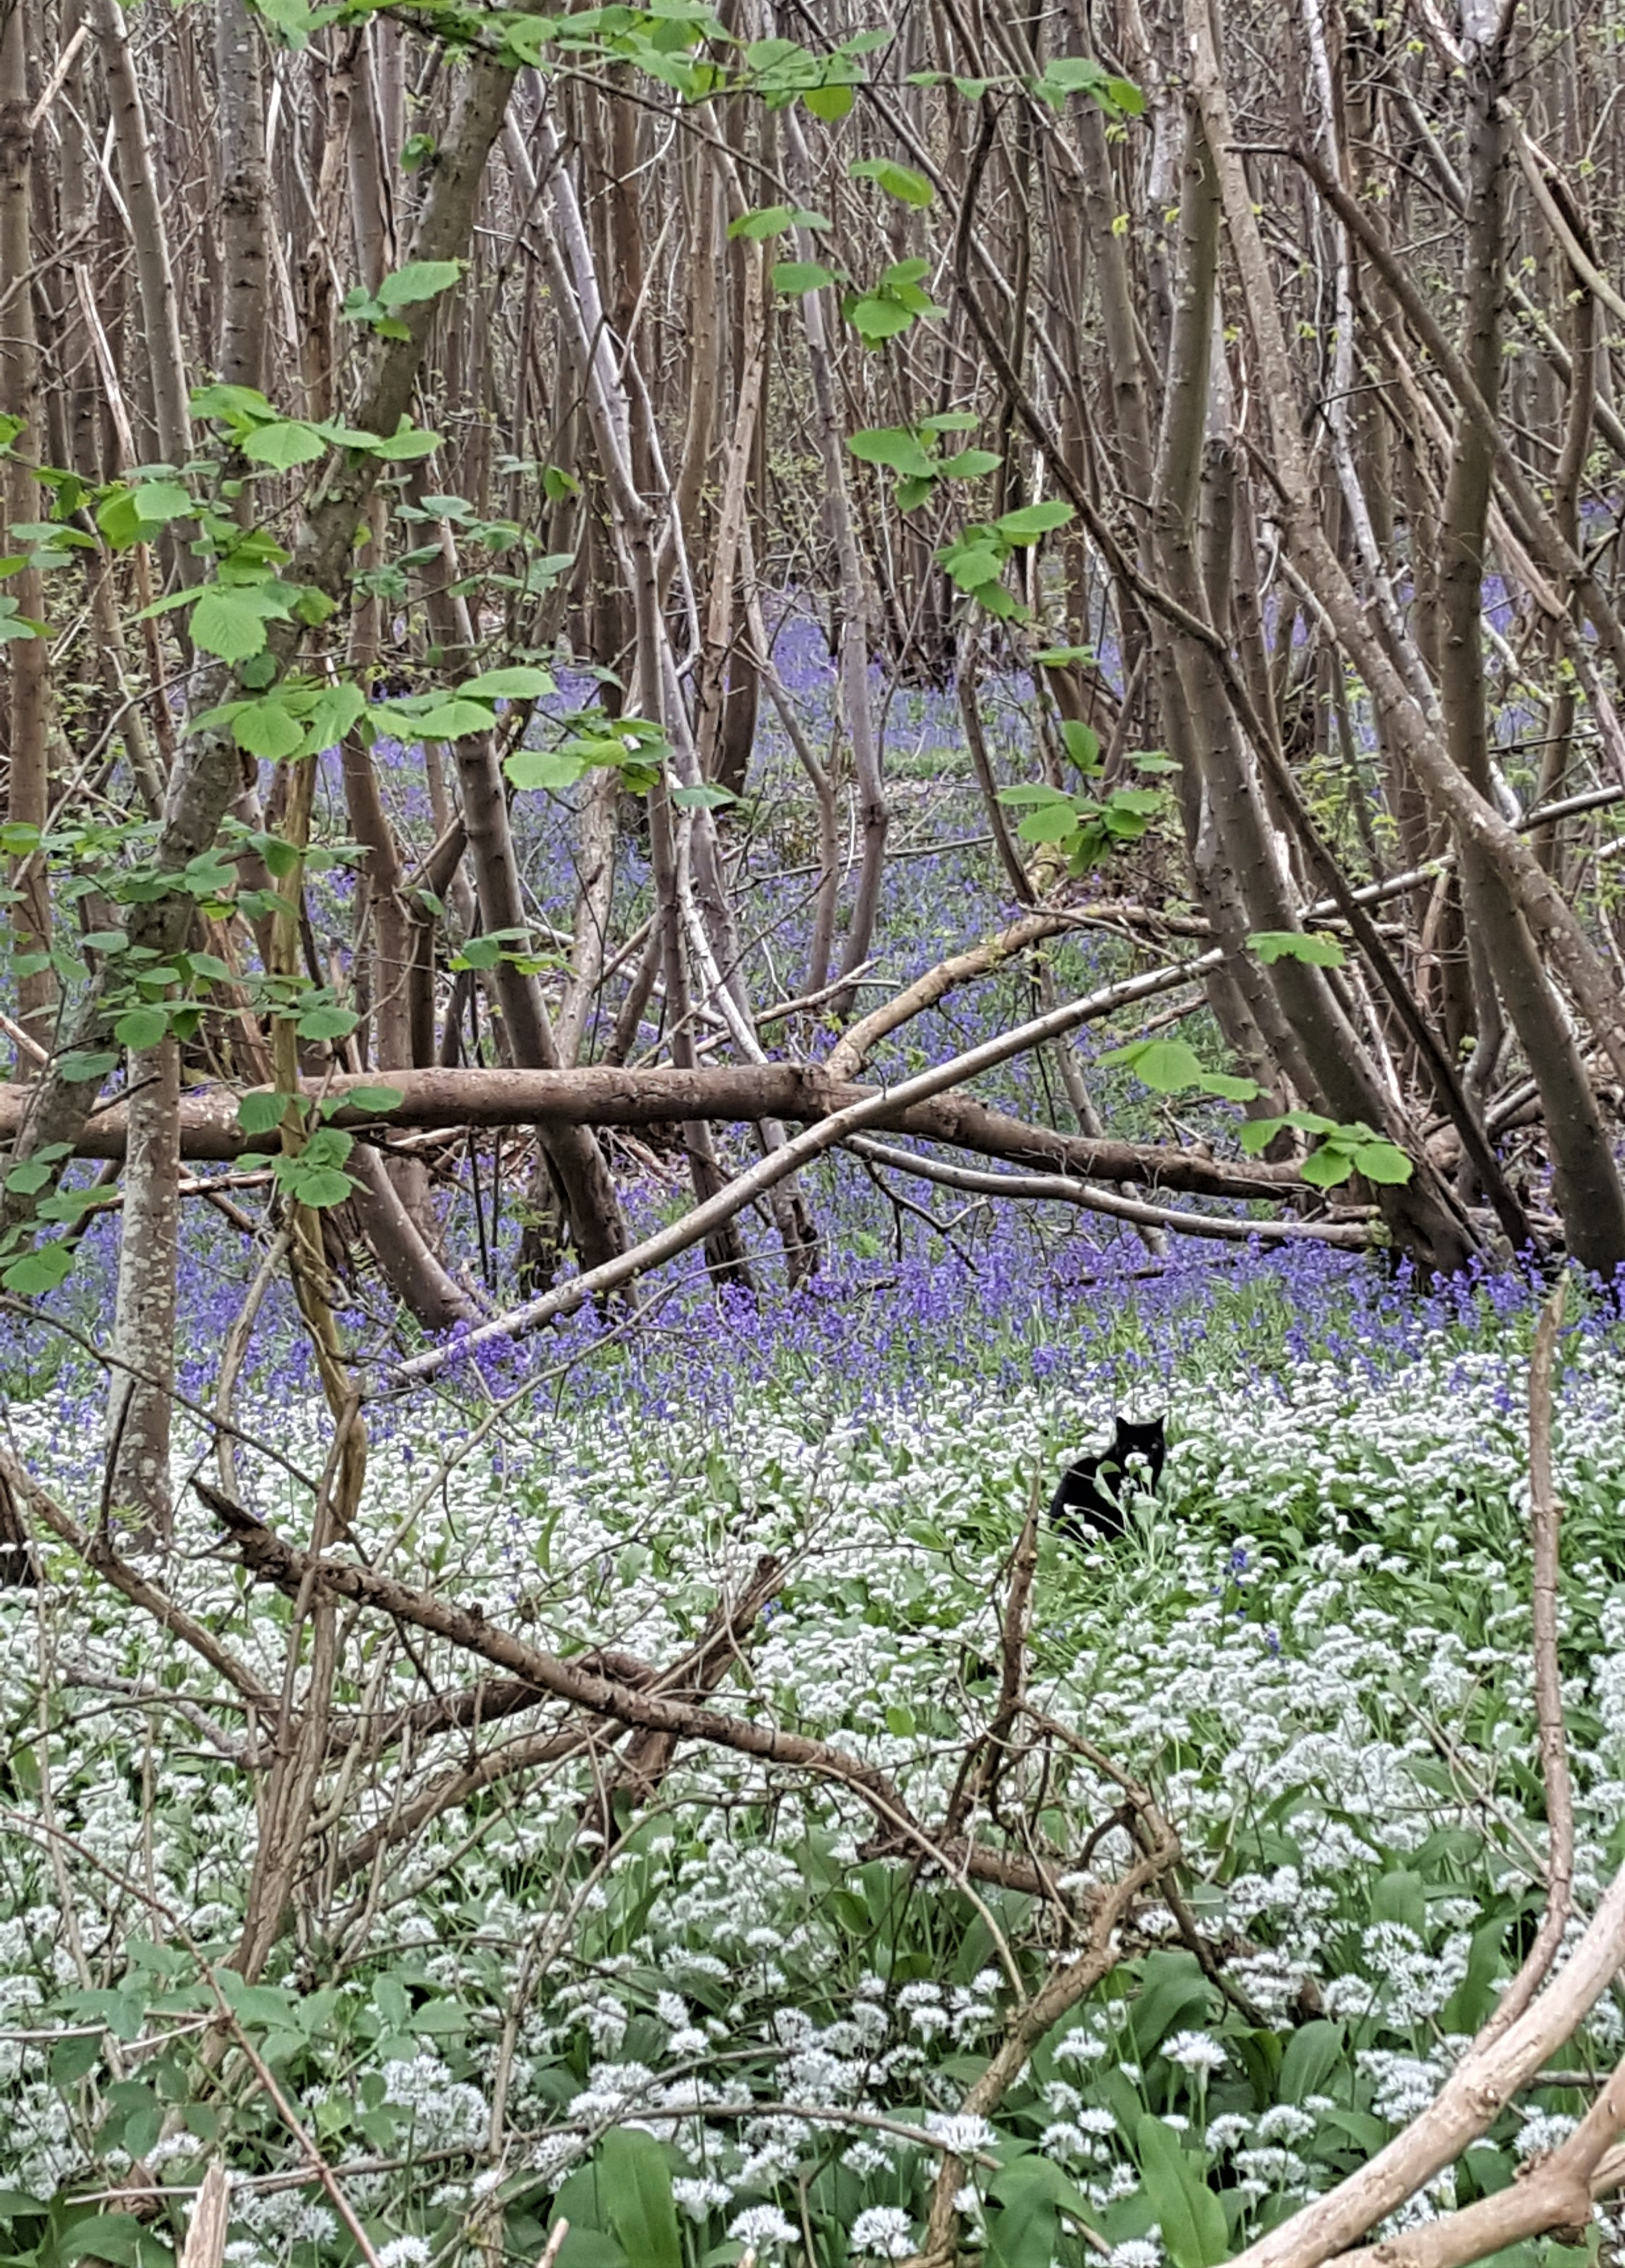 Brinkwells woods with bluebells, wild garlic and who?